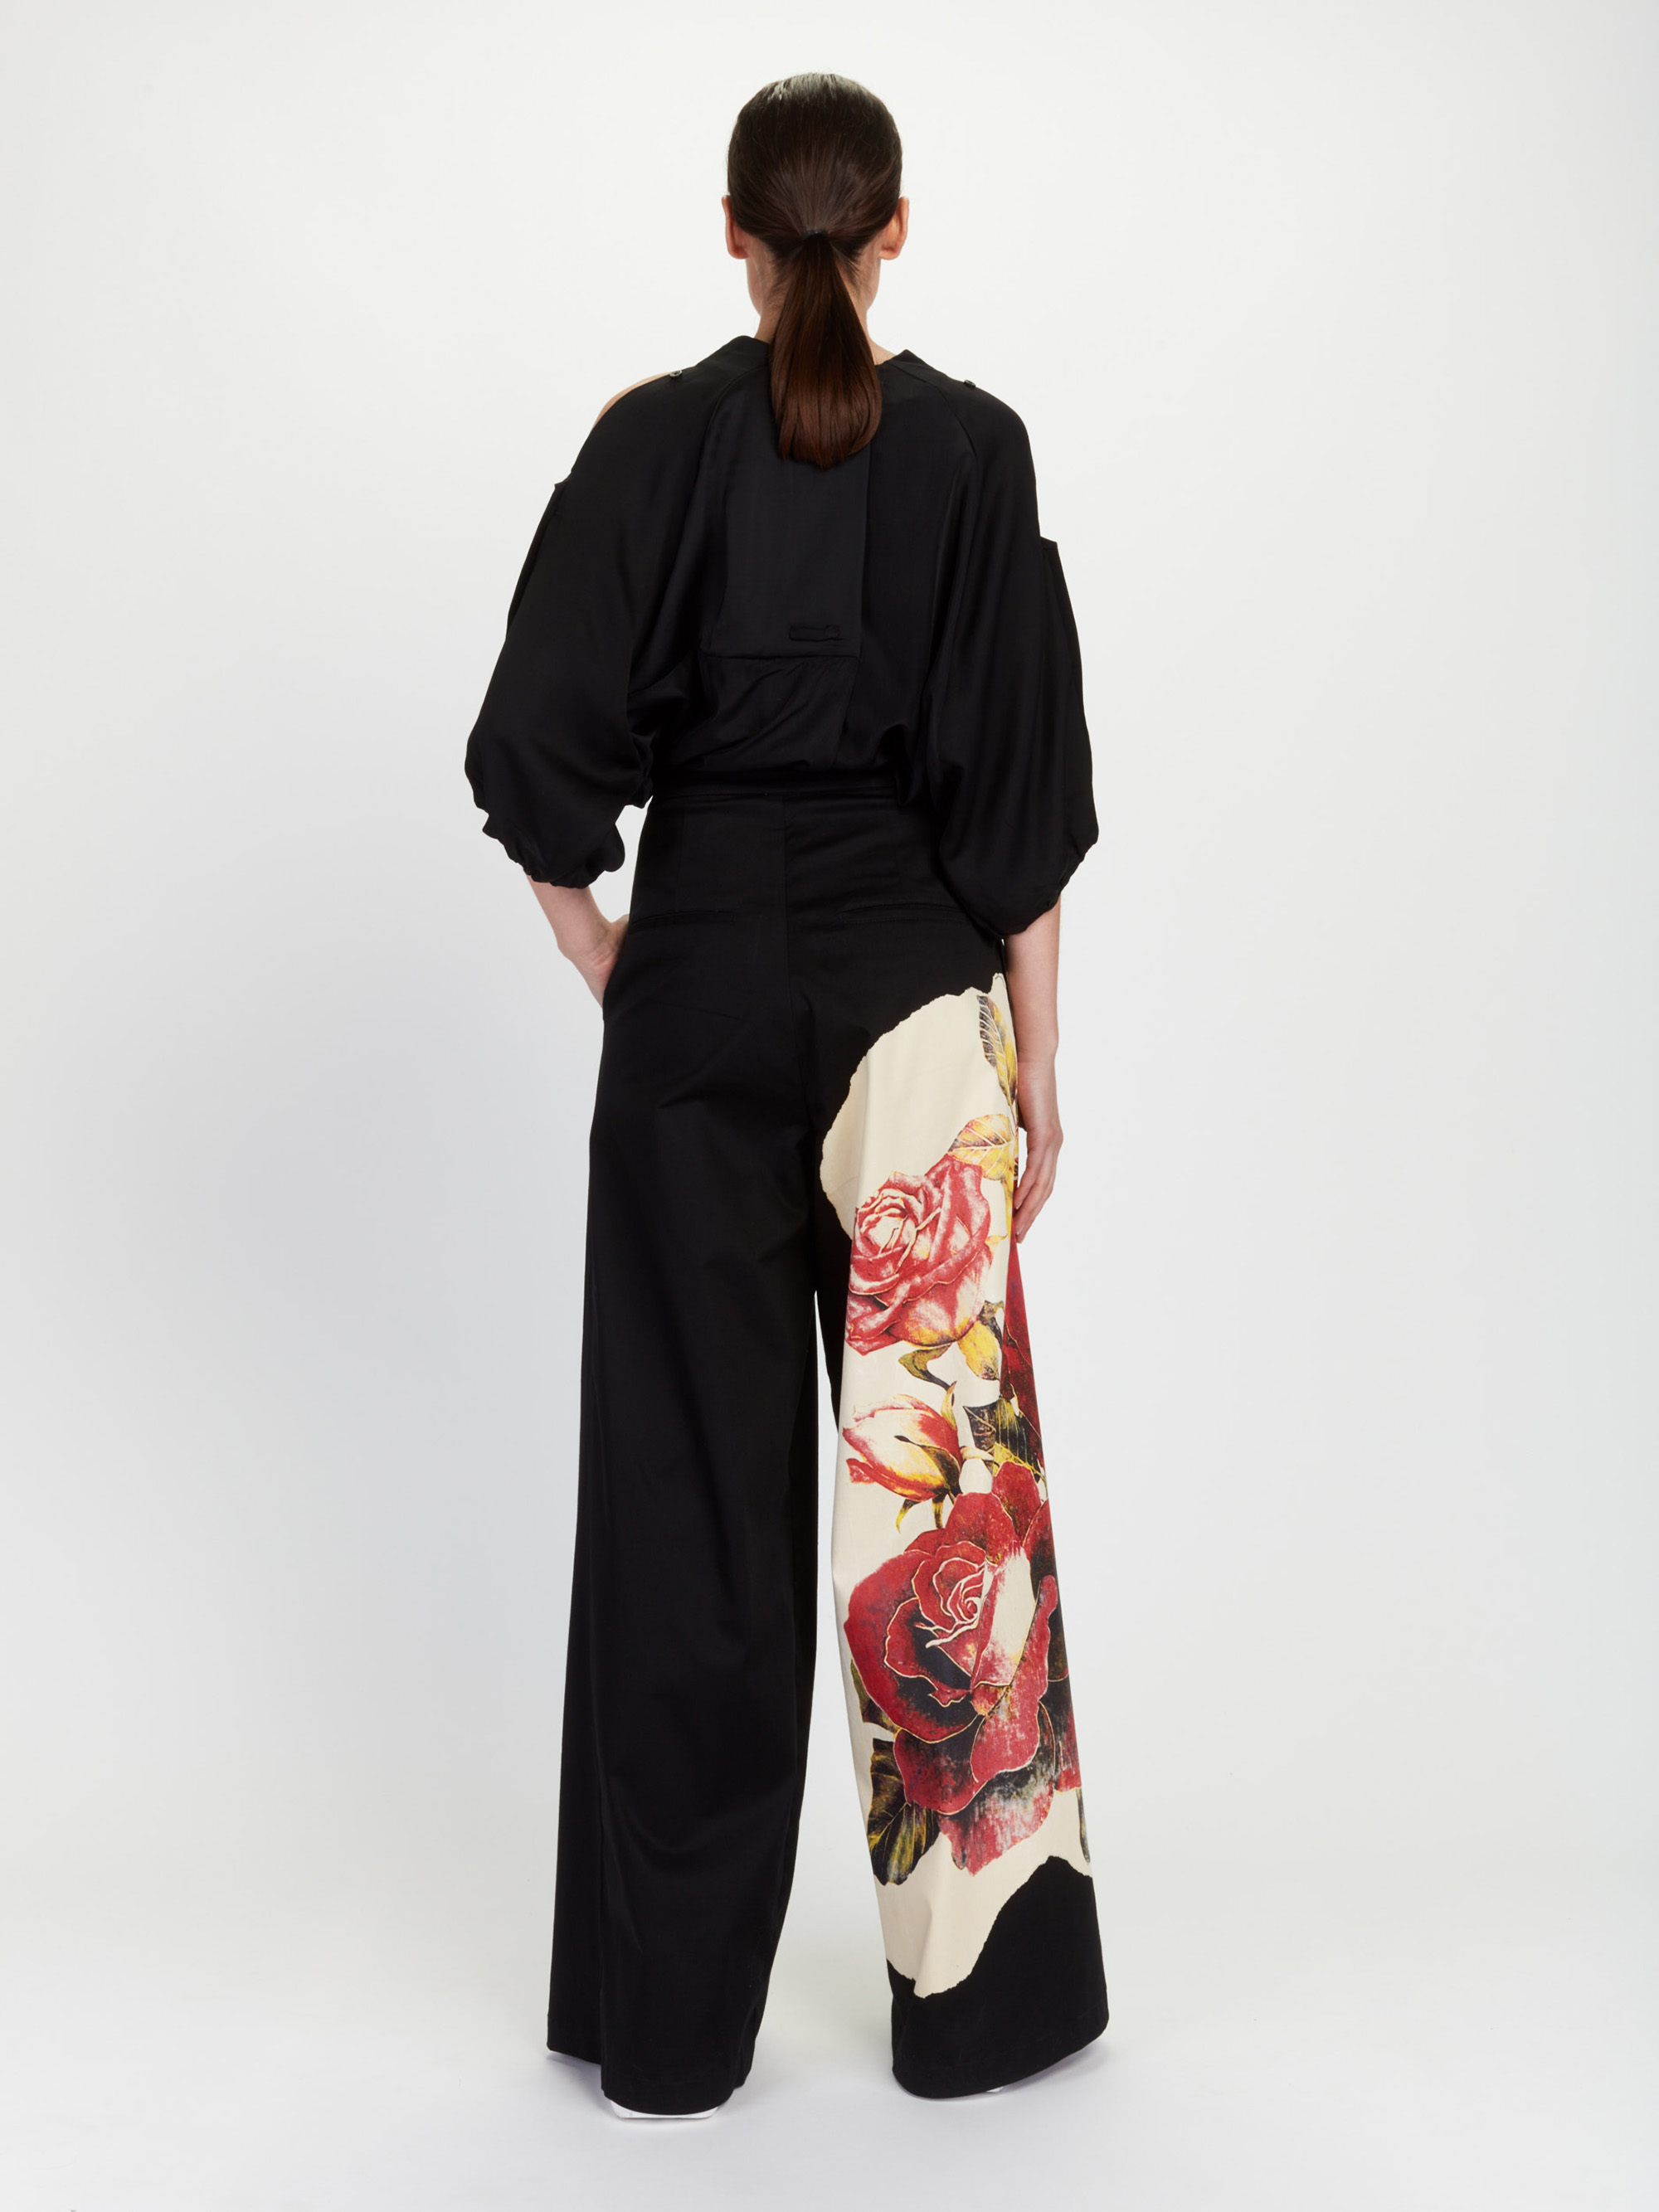 jt_invisible-printed-pant_30-26-2018__picture-1752